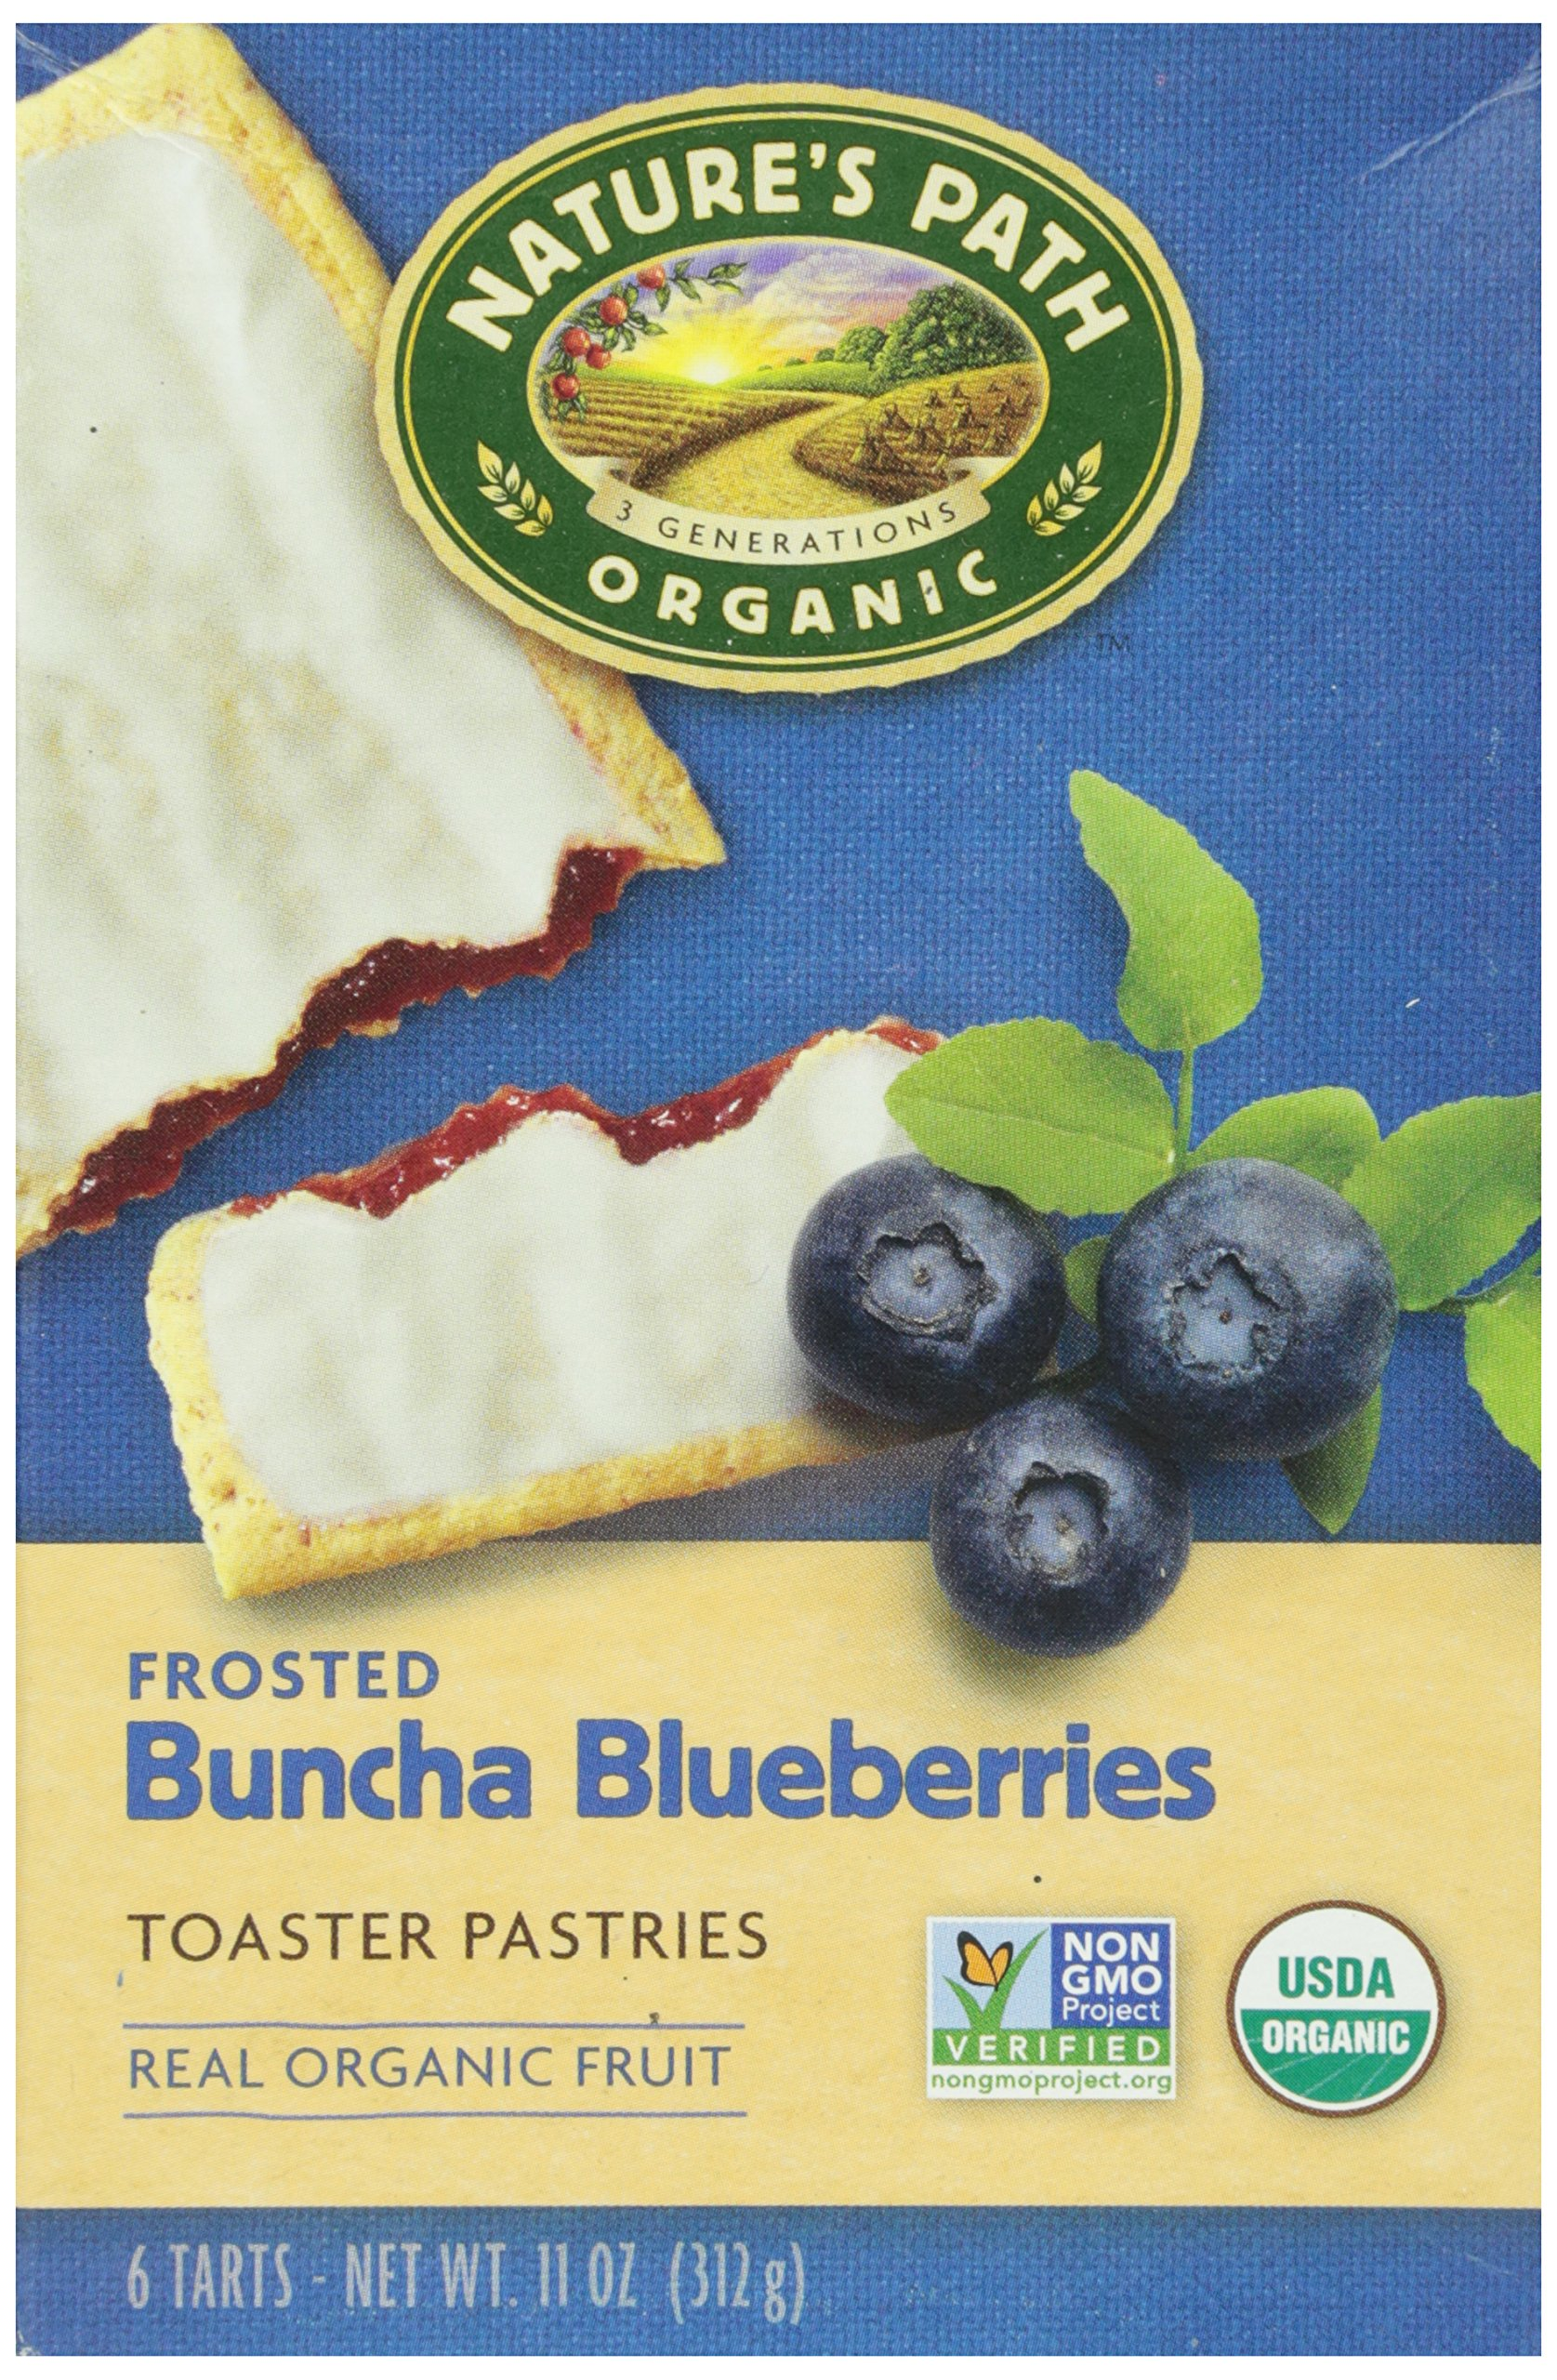 Nature's Path, Organic Toaster Pastries, Blueberry Frosted, 6 ct